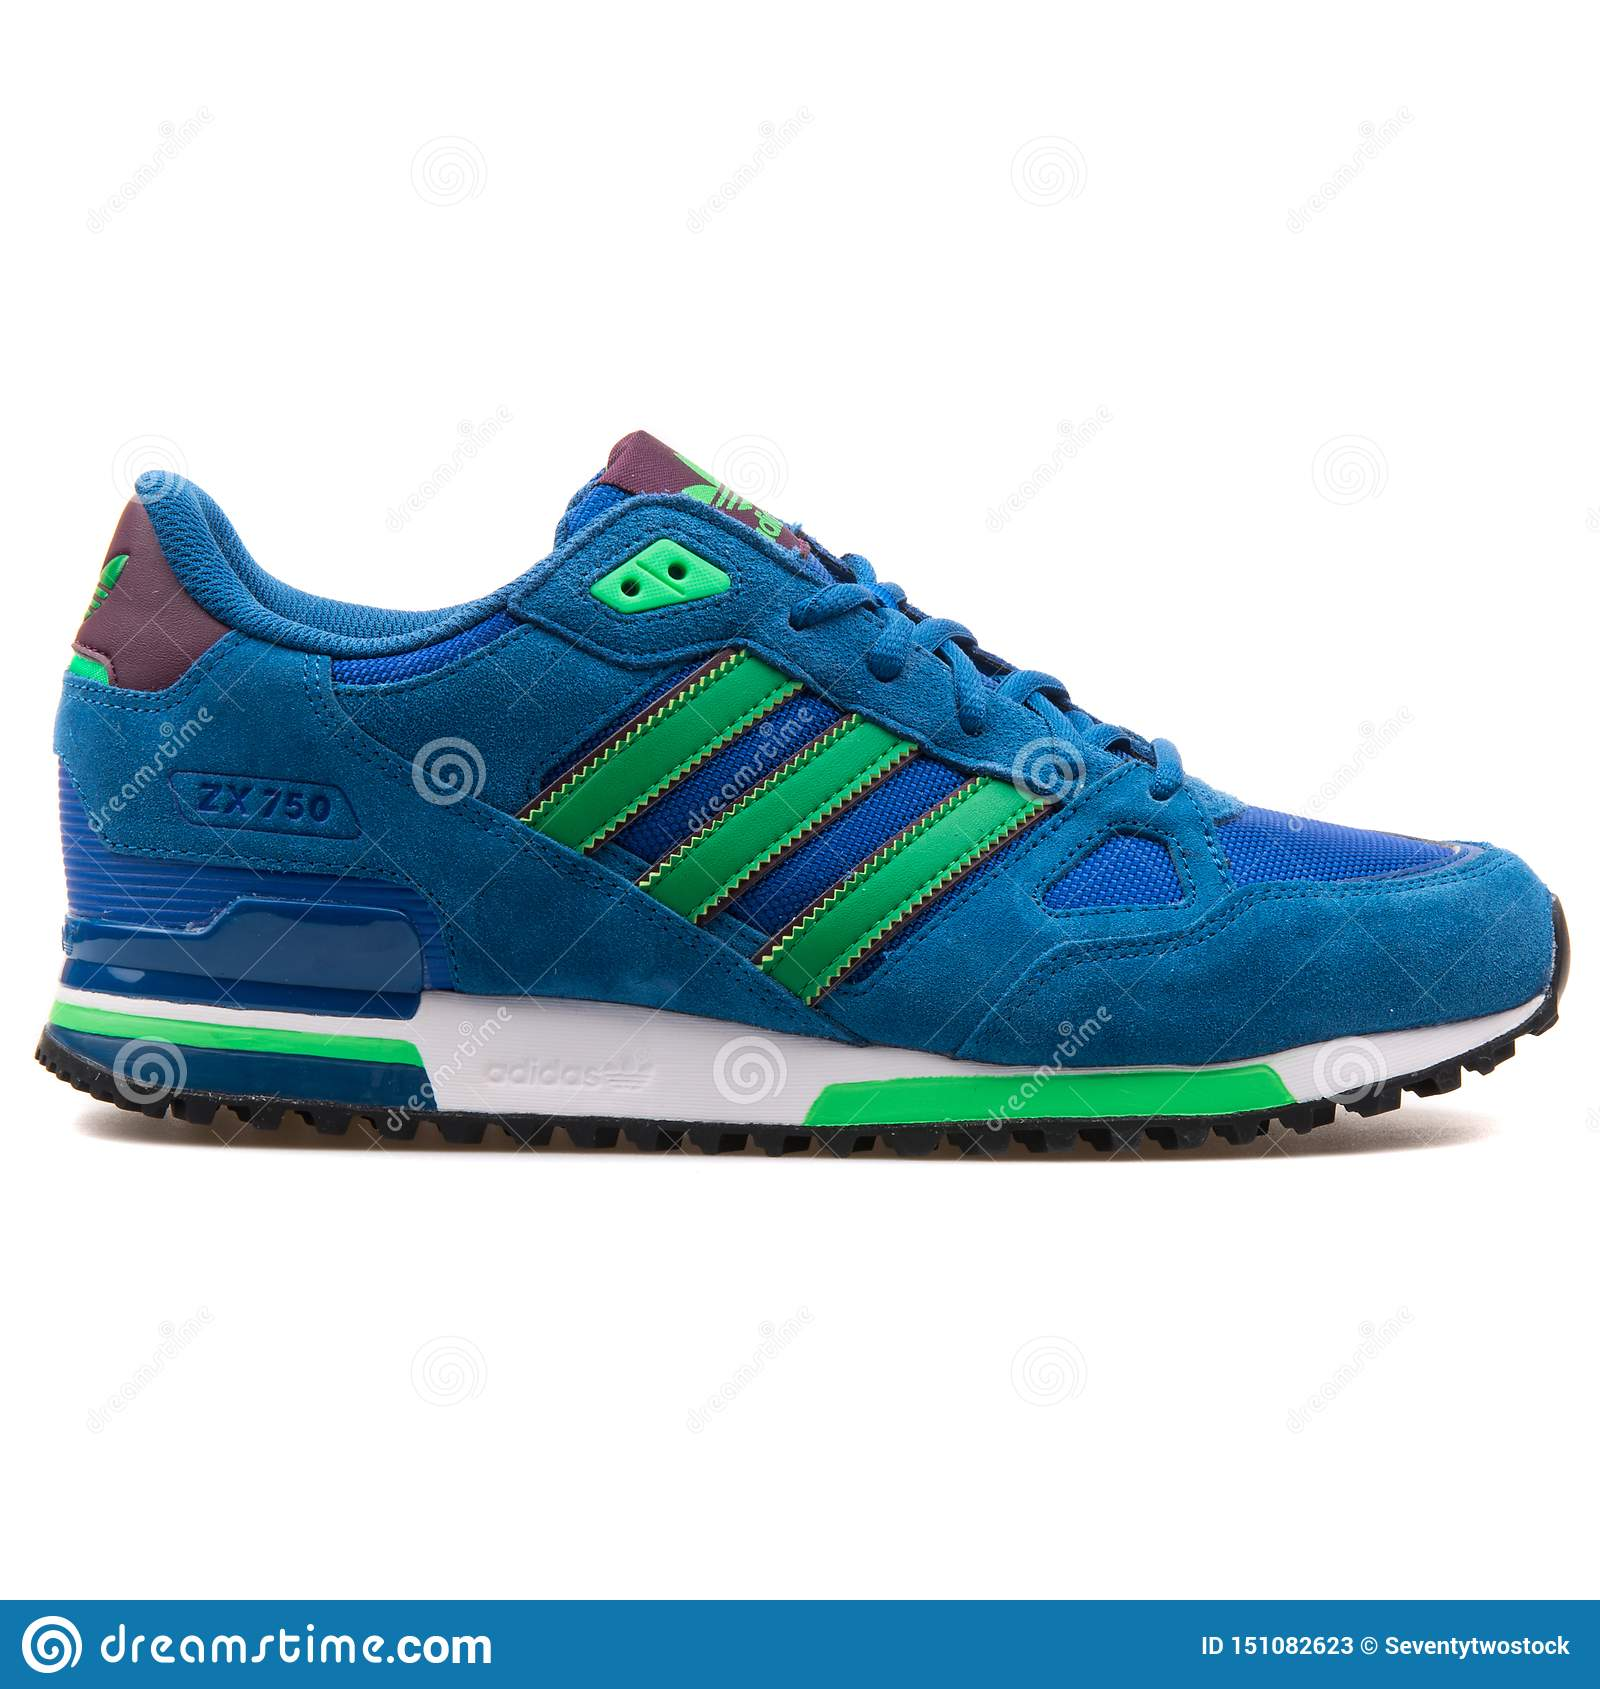 Adidas ZX 750 Blue And Green Sneaker Editorial Stock Photo